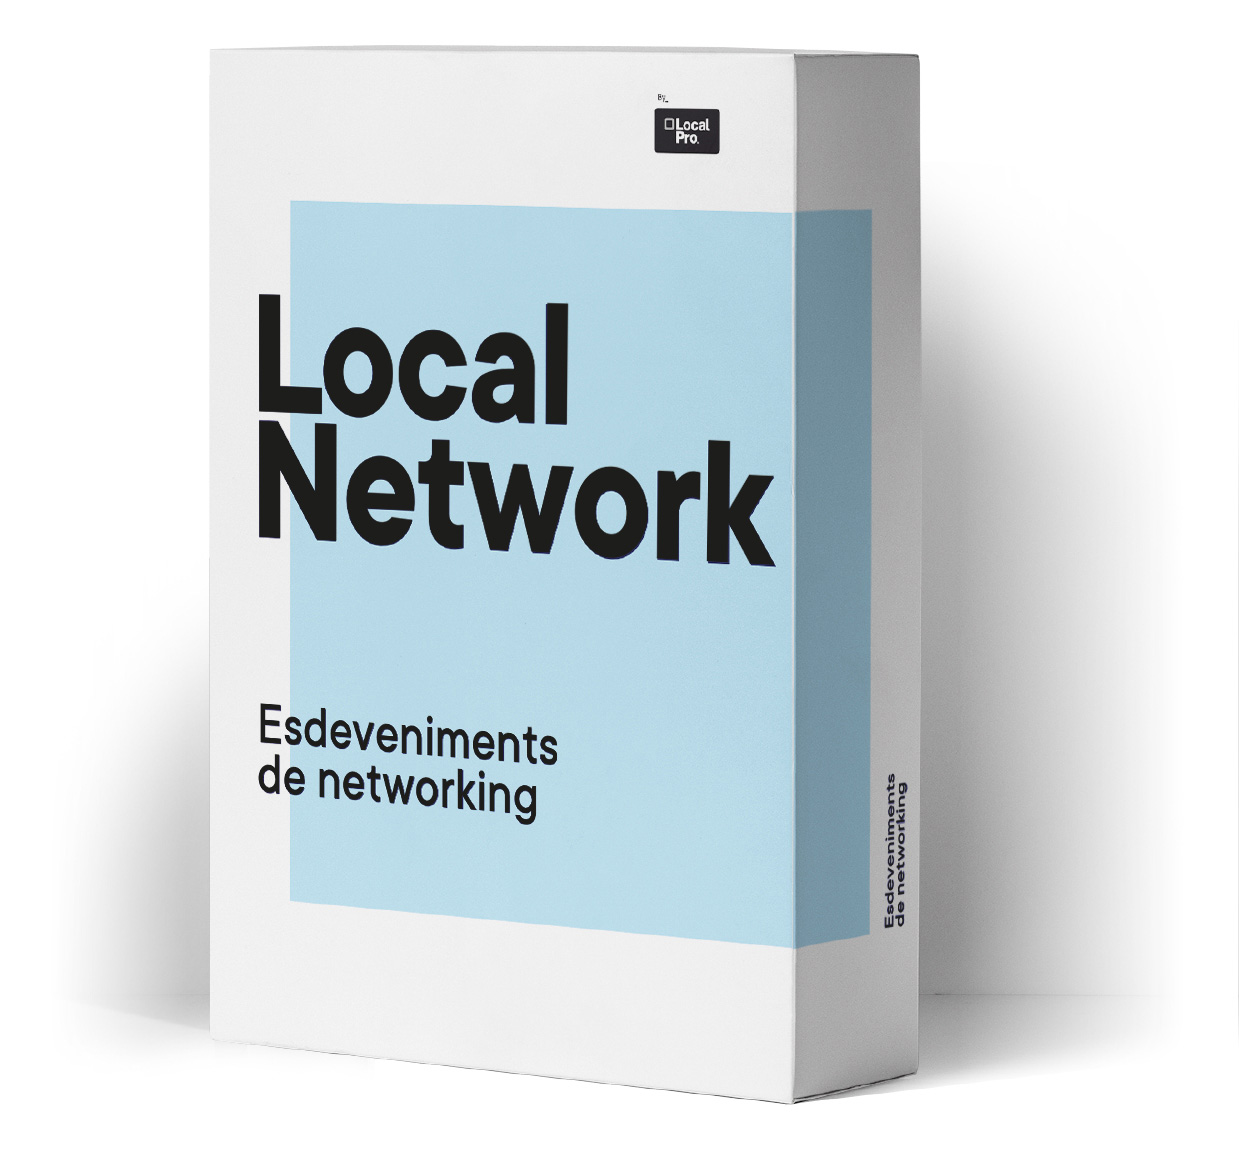 Serveis networking esdeveniments Local Pro